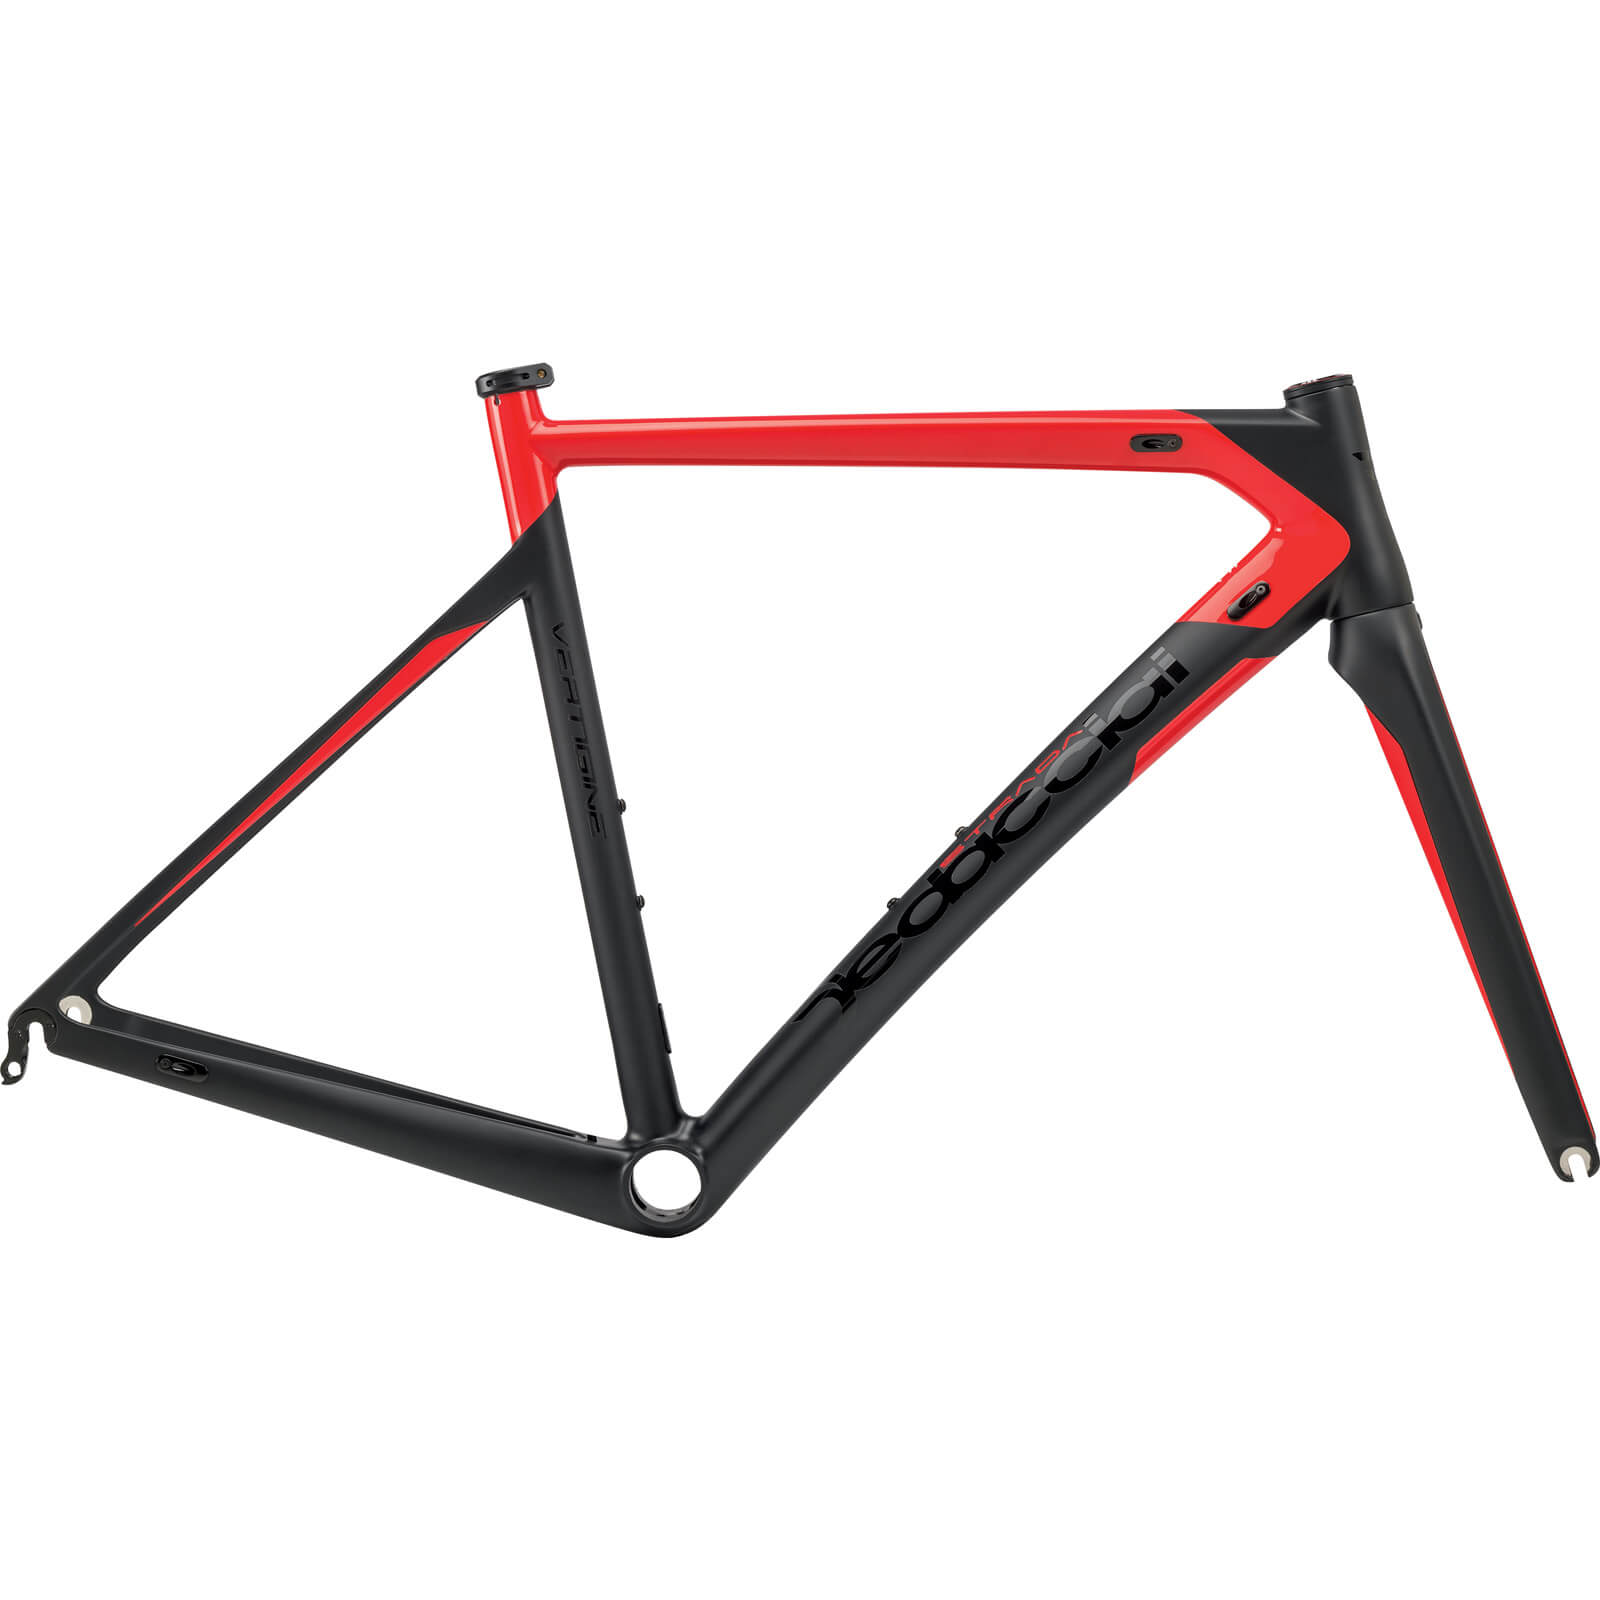 Dedacciai Vertigine Frameset - Black/Red